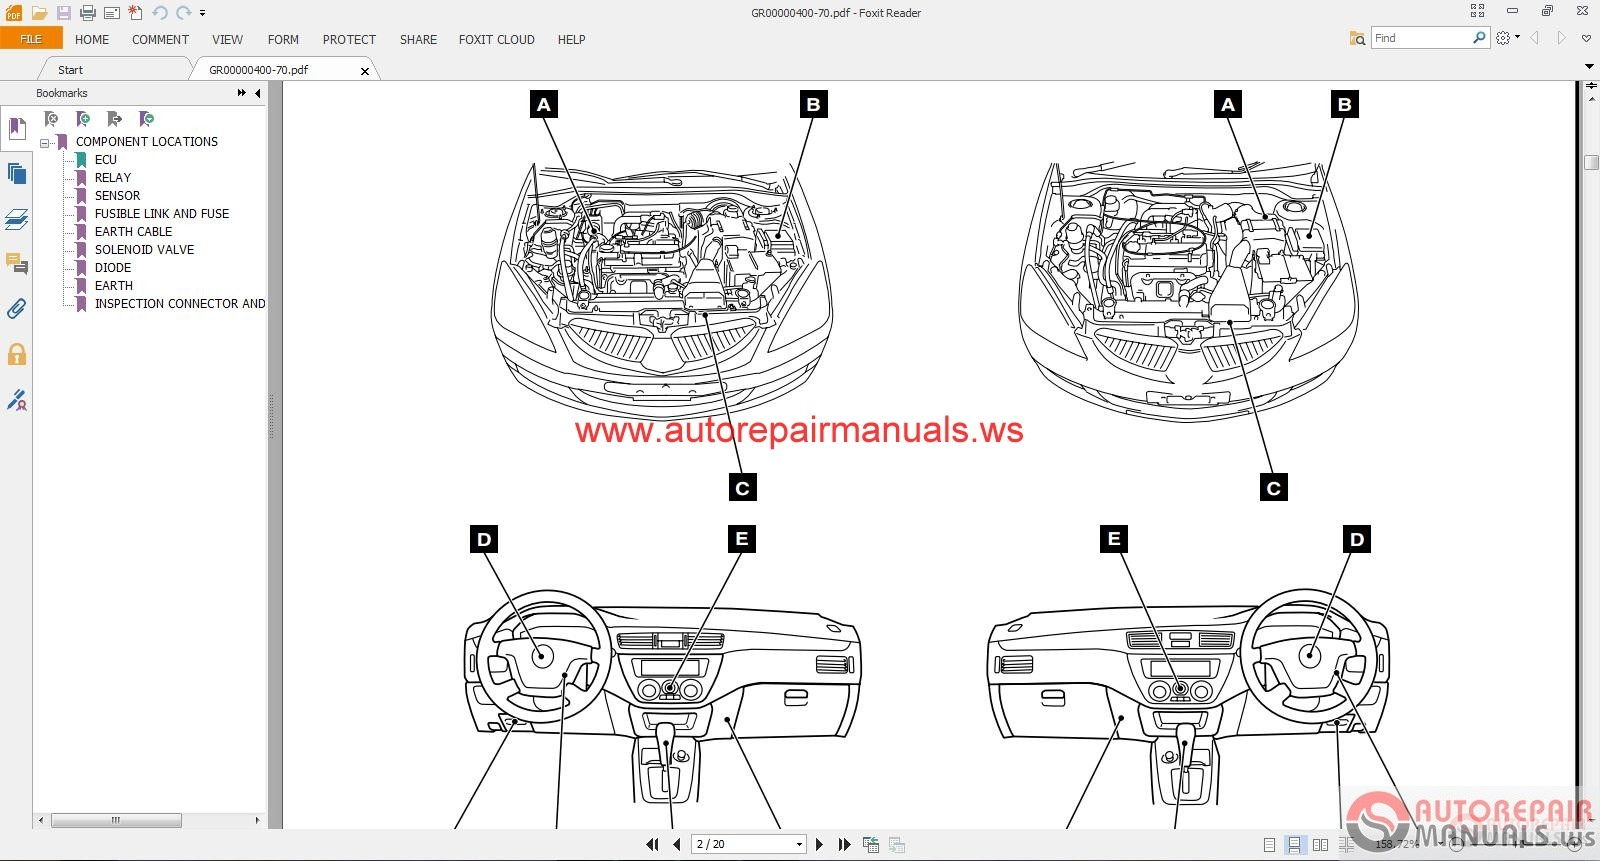 Mitsubishi_Lancer_IX_2005_Wiring_Diagrams2 diagrams 10881367 2011 lancer wiring diagram mitsubishi lancer mitsubishi lancer wiring diagram free download at alyssarenee.co